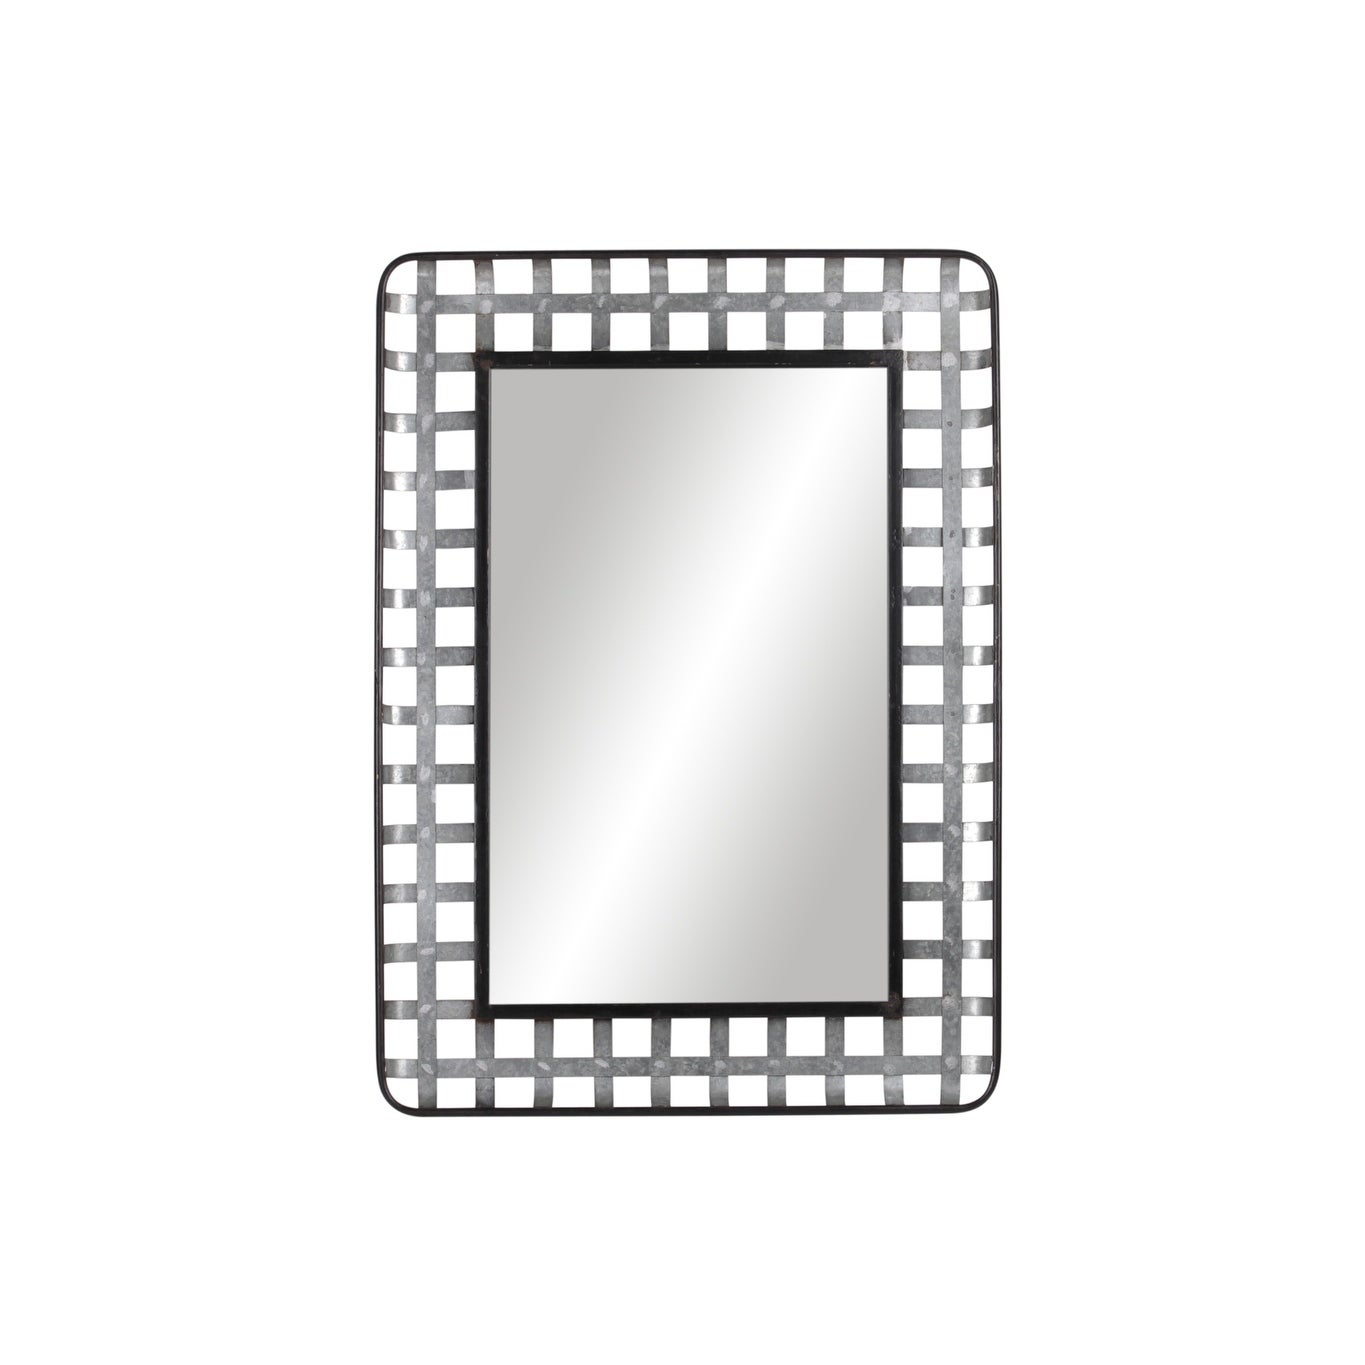 Utc31077: Metal Round Wall Mirror With Lattice Cross Design Frame Galvanized Finish Gray – Silver – N/a/n Intended For Round Galvanized Metallic Wall Mirrors (View 15 of 20)